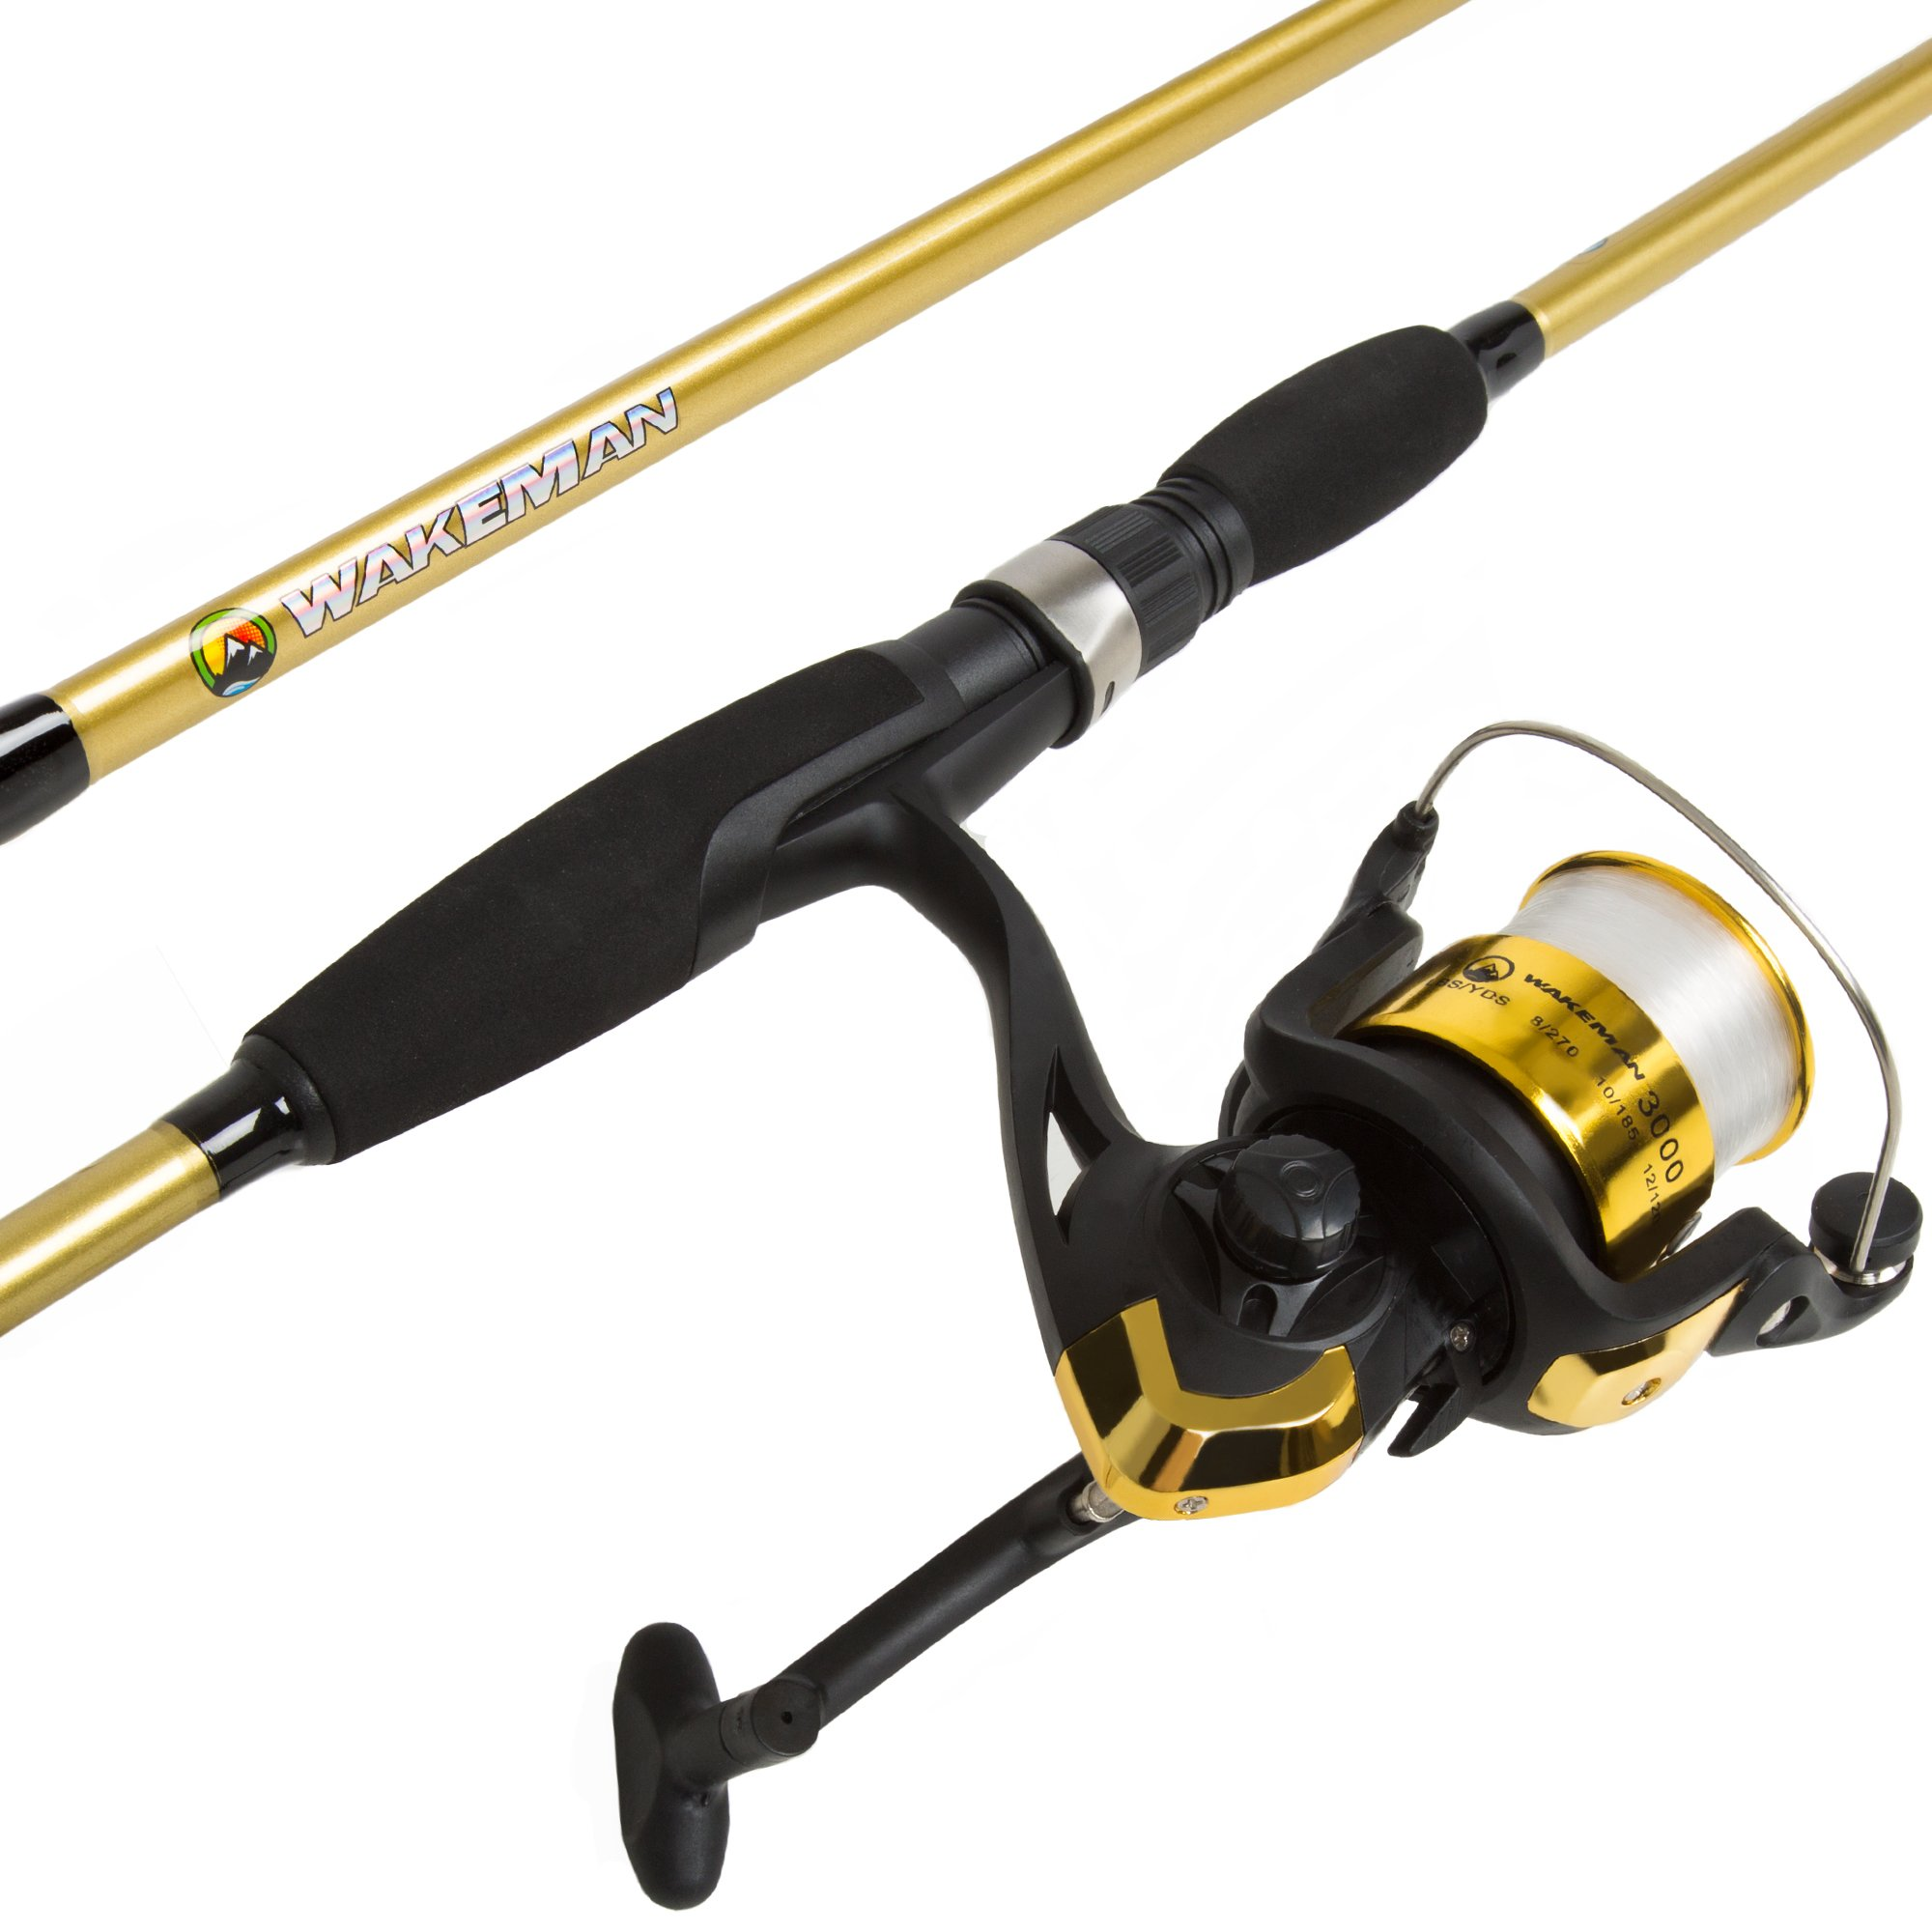 Wakeman Strike Series Spinning Rod and Reel Combo - Trophy Gold